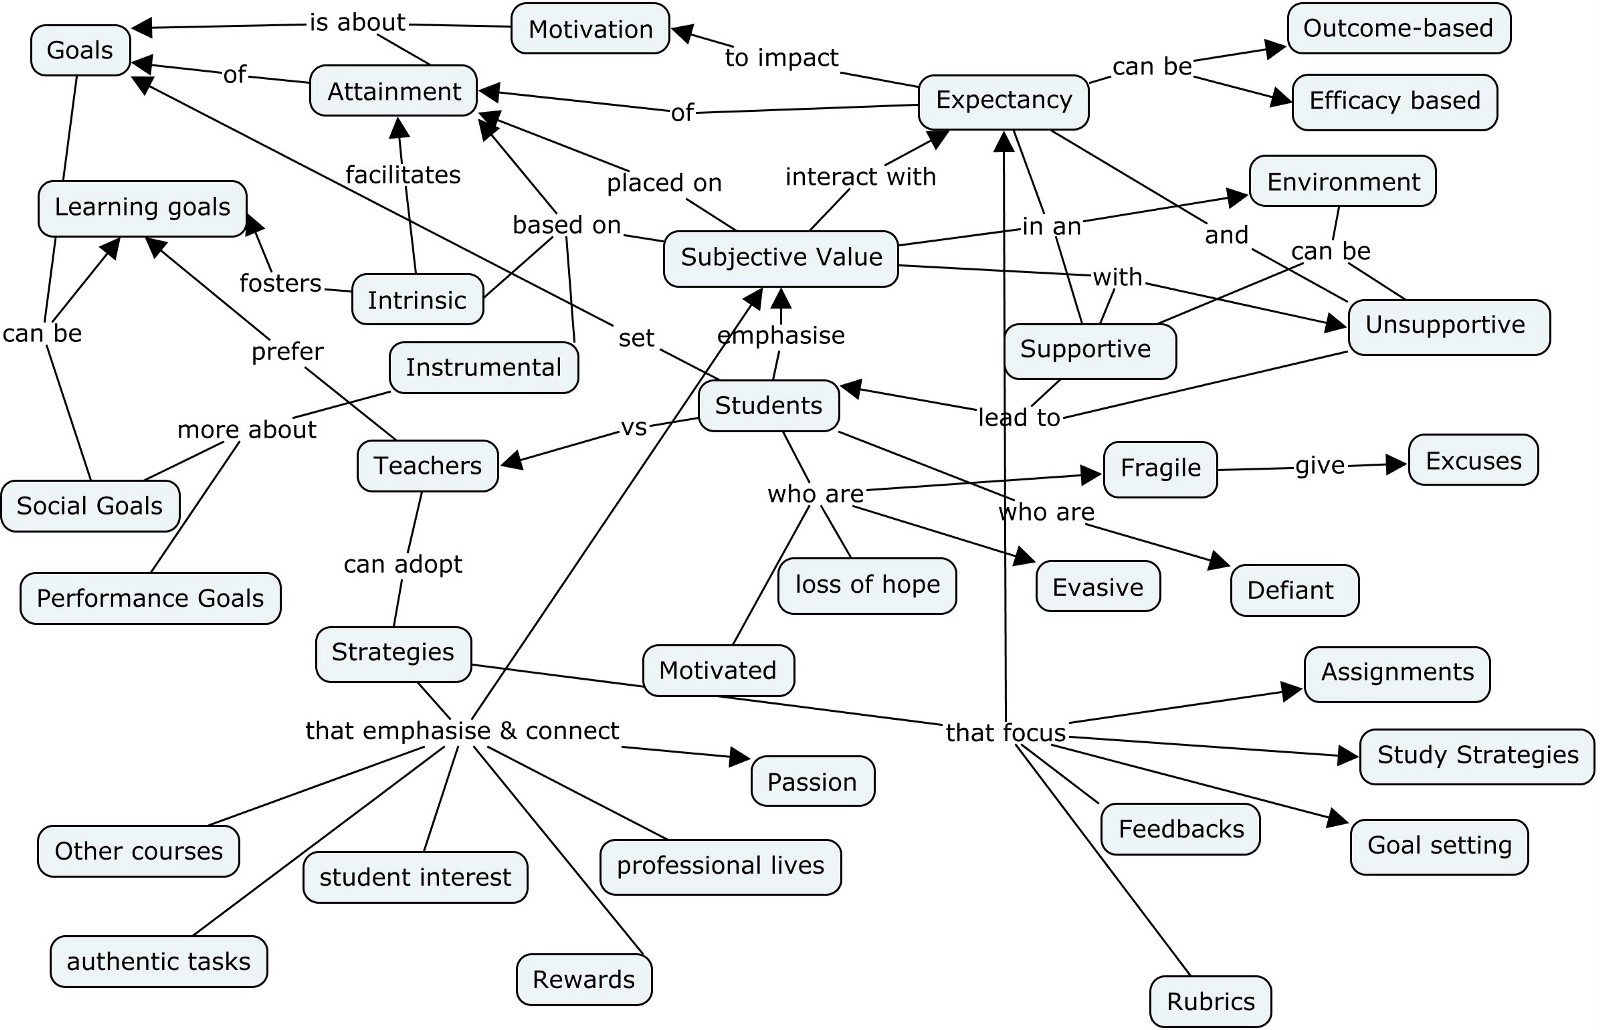 How to draw concept maps and mind maps for sensemaking